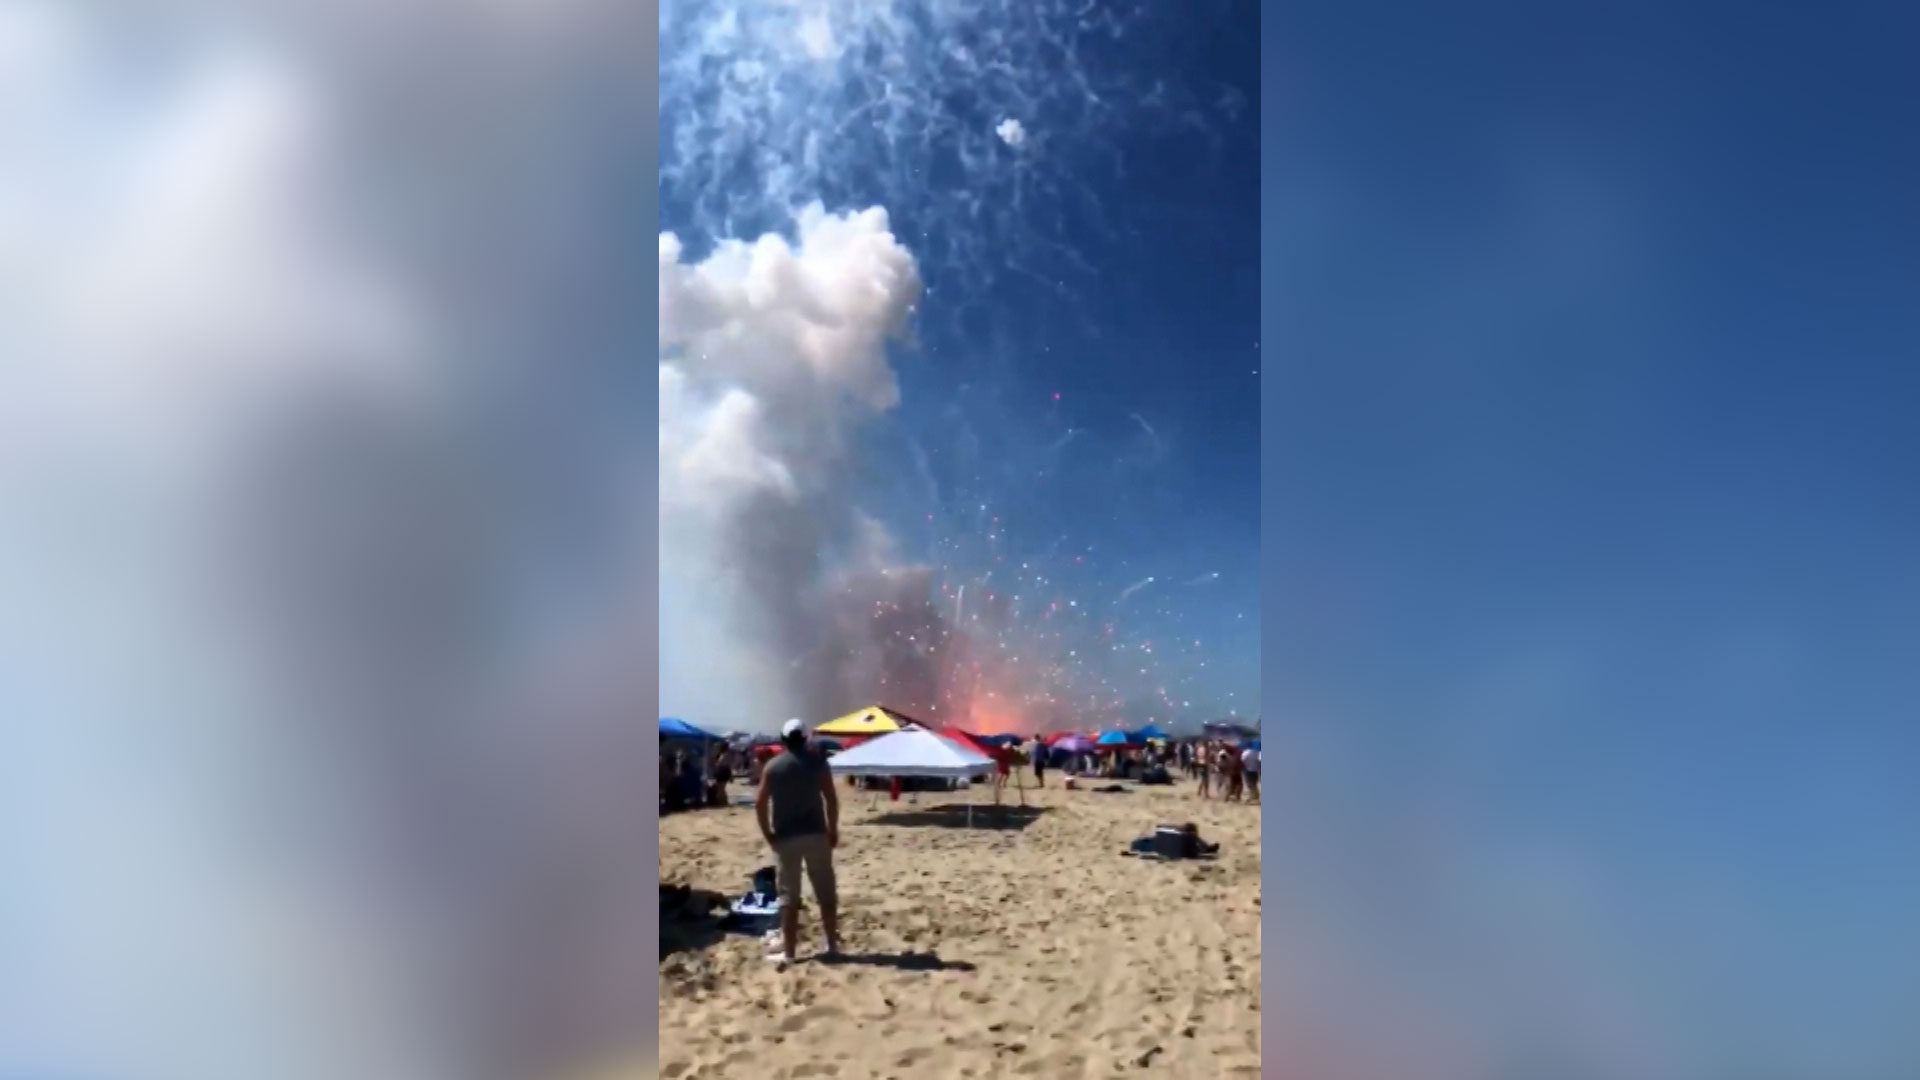 Fireworks meant for July 4th display in Maryland's Ocean City accidentally explode